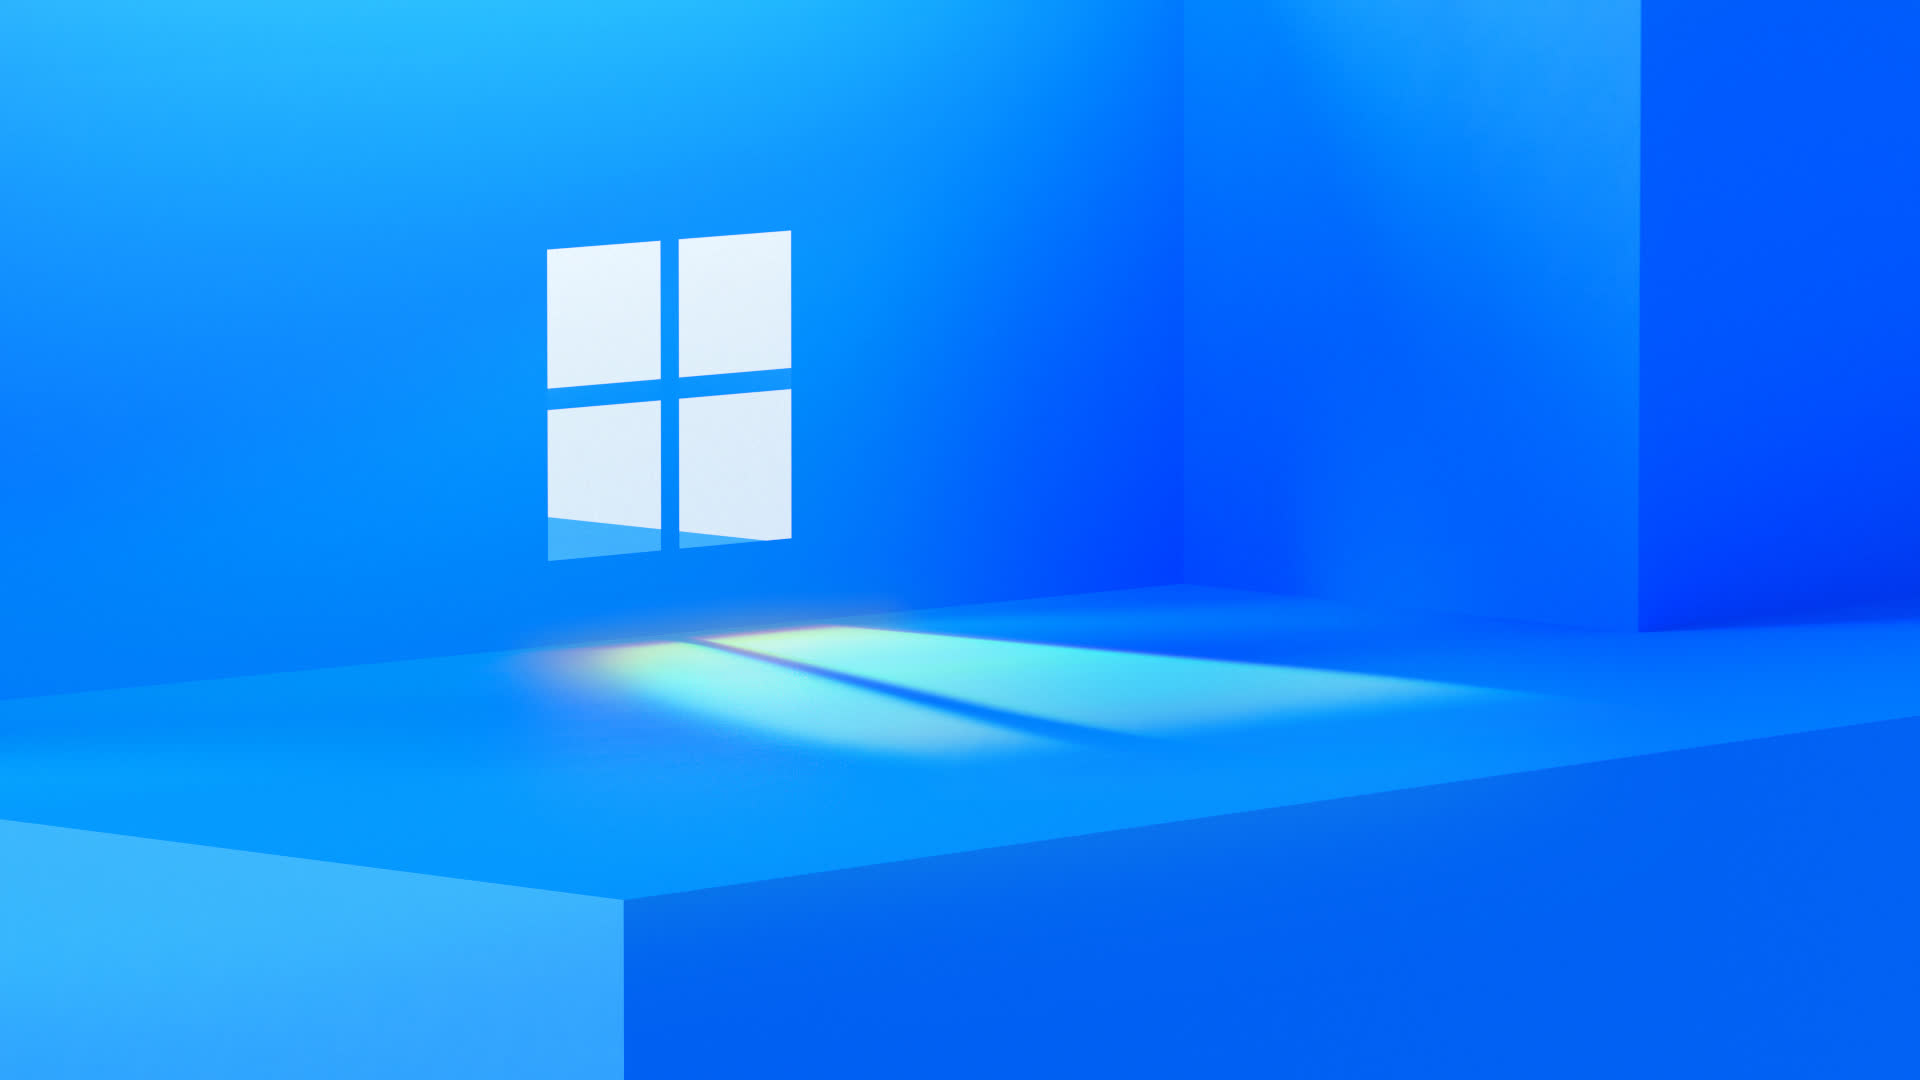 Microsoft sends DMCA takedown notices to sites sharing Windows 11